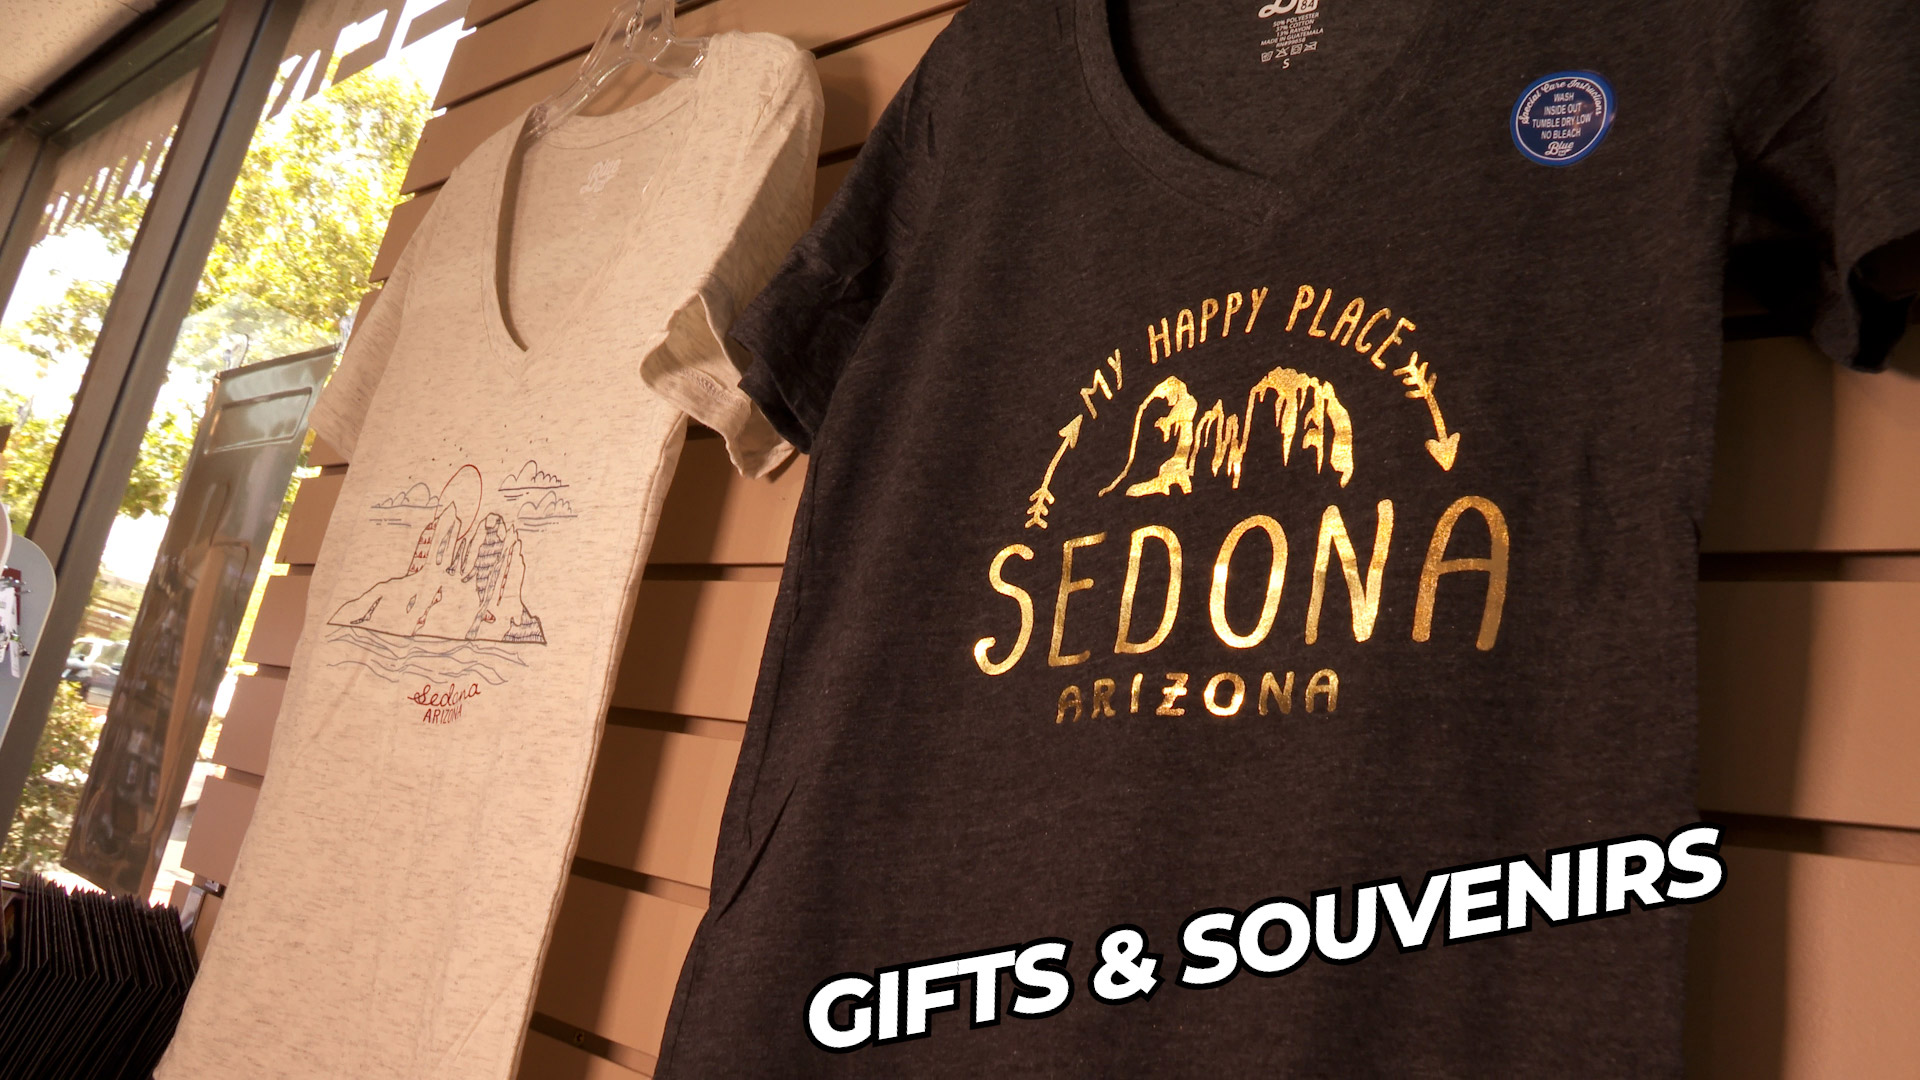 Sedona souvenirs available at Crazy Tony's Uptown Market